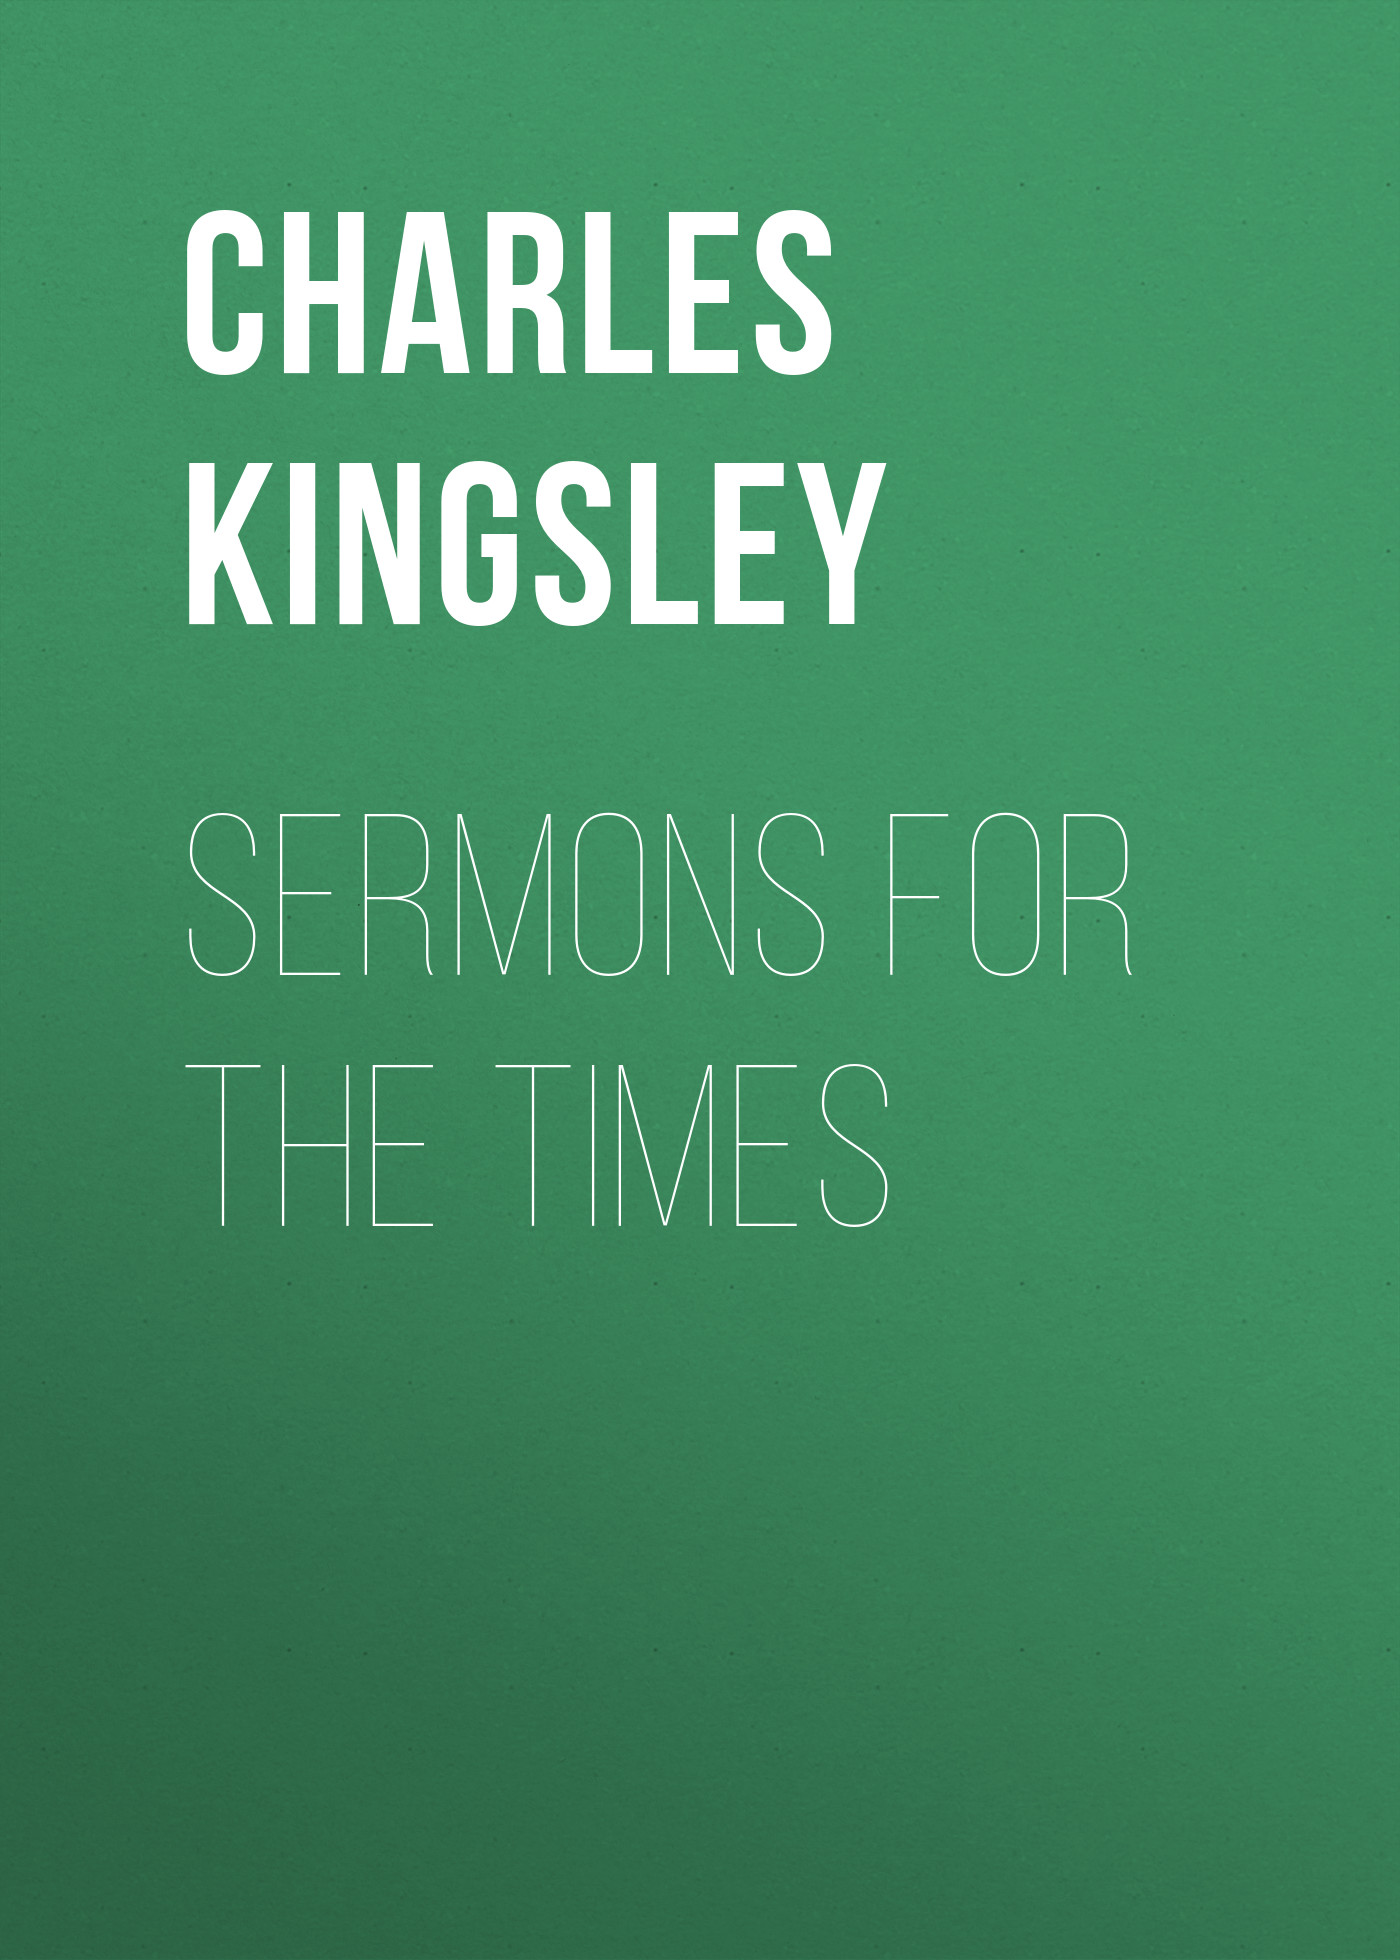 Charles Kingsley Sermons for the Times